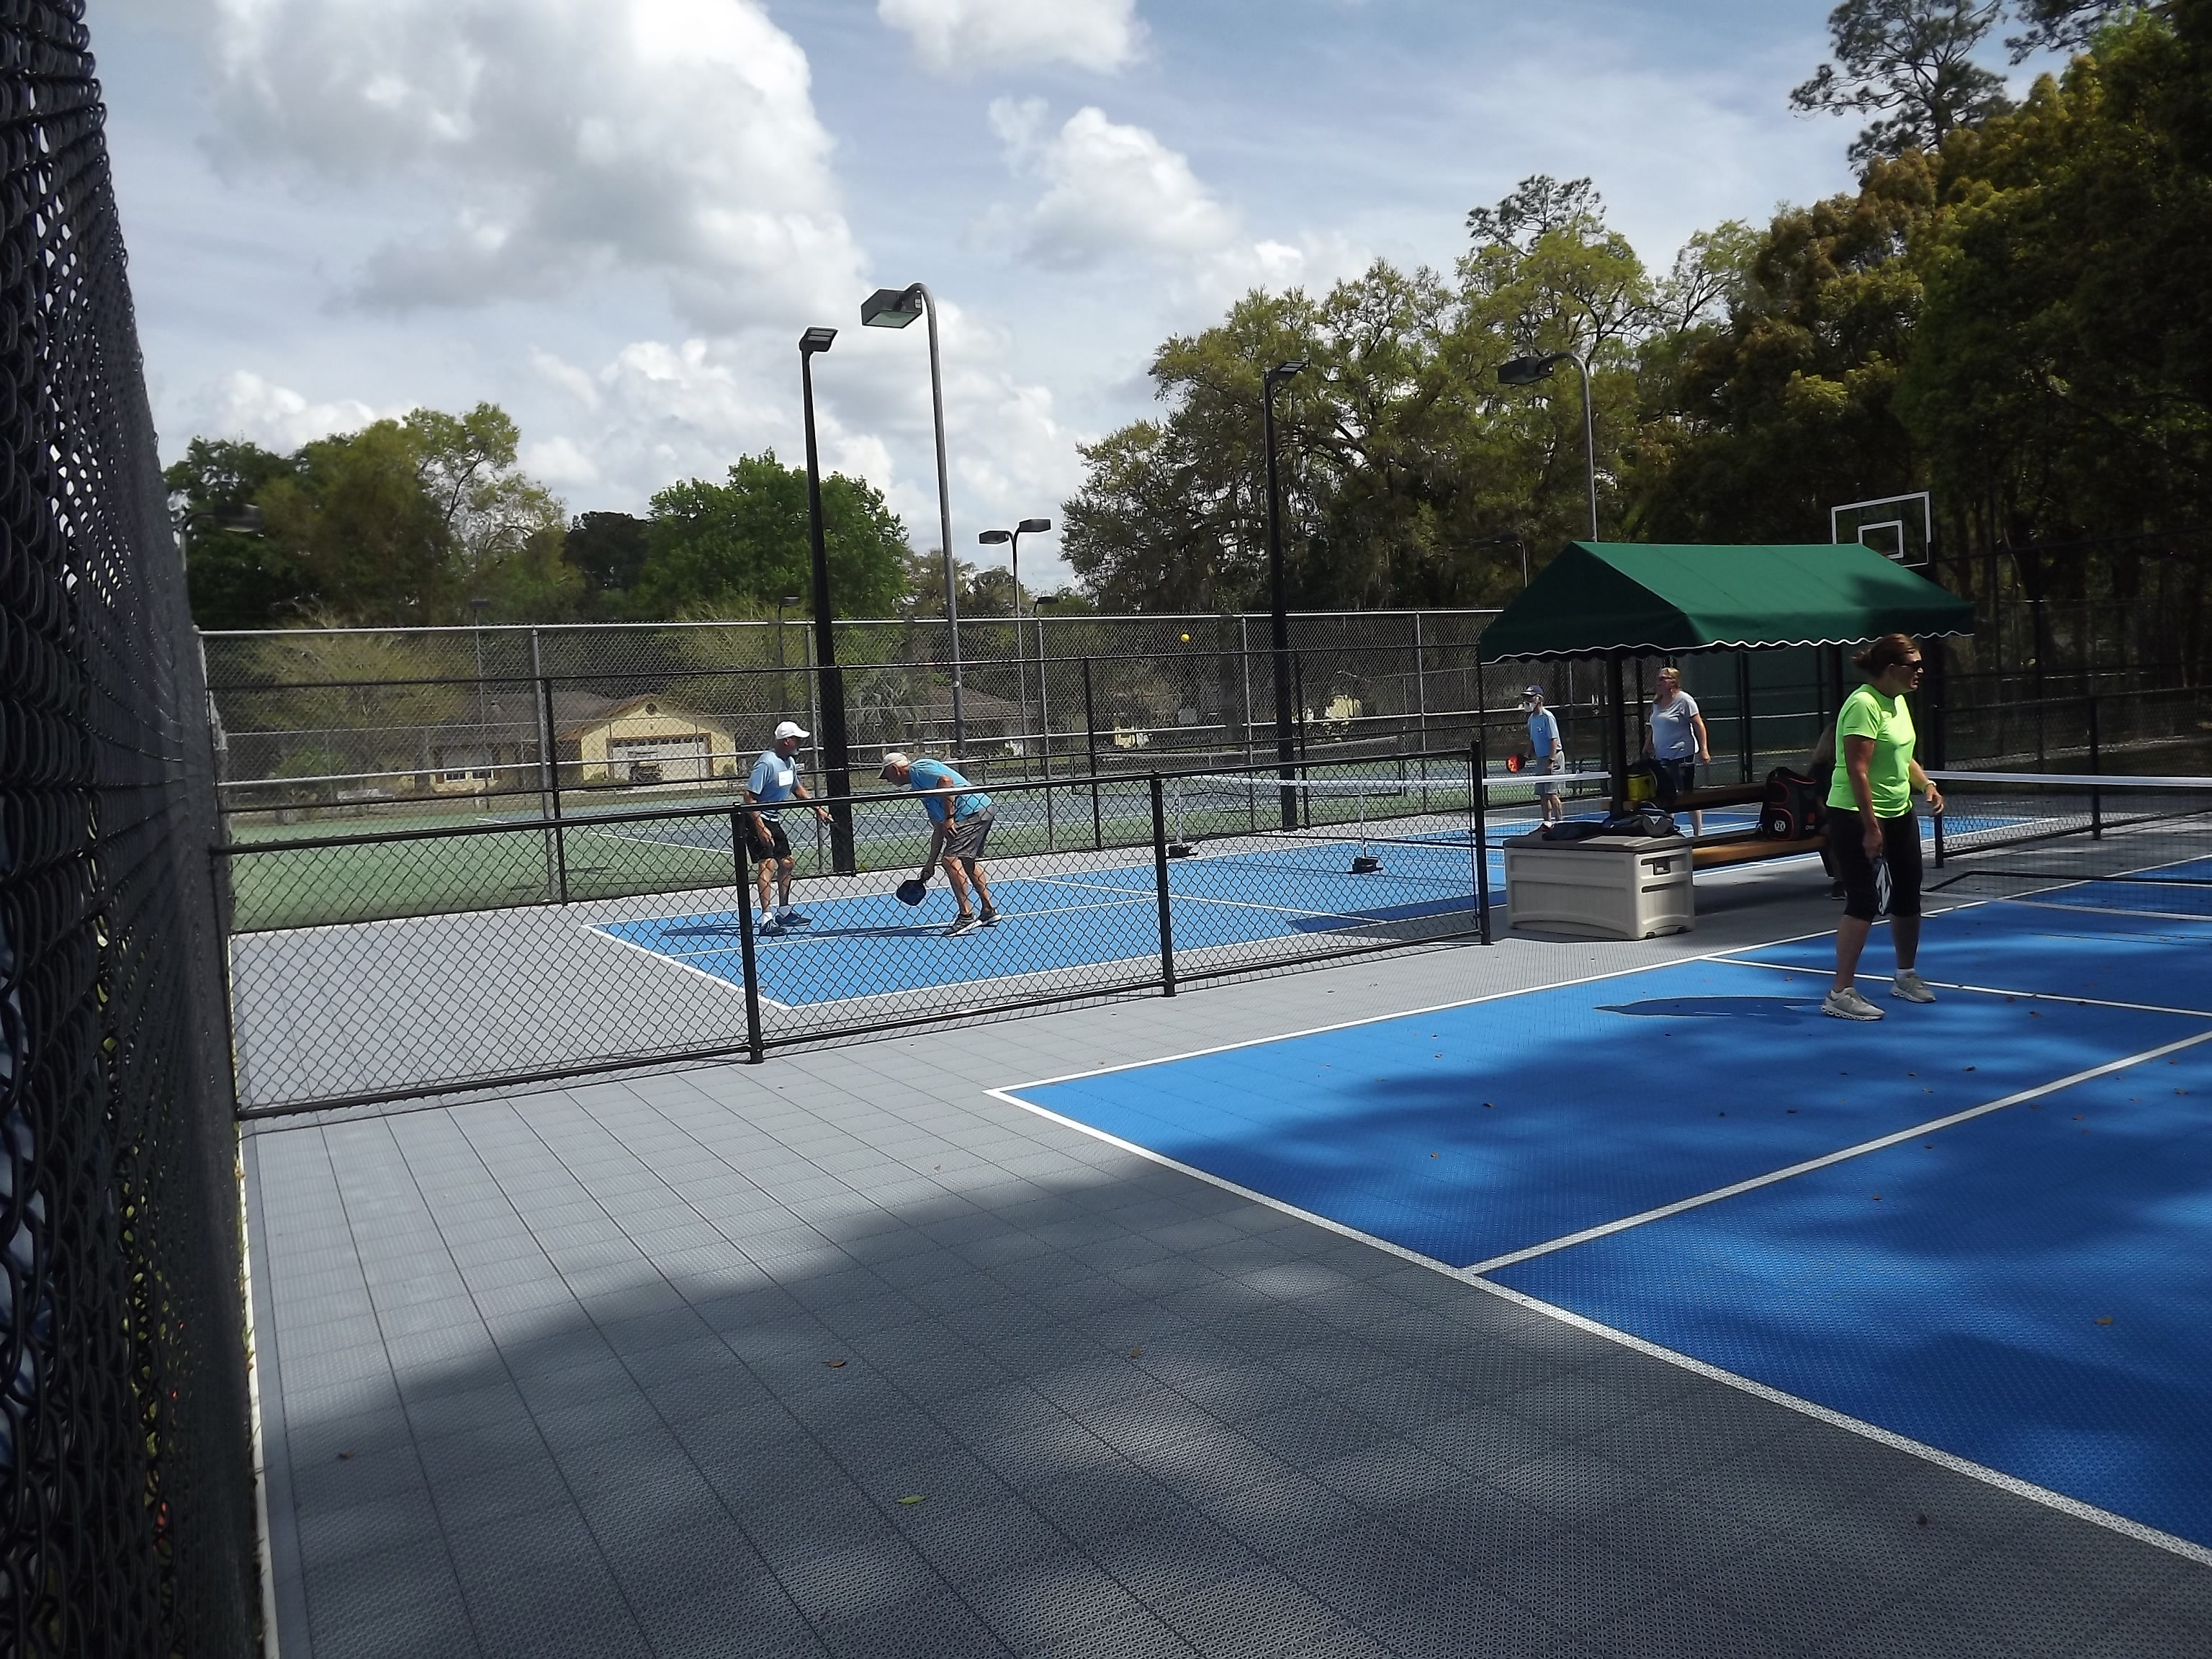 On the pickle ball court